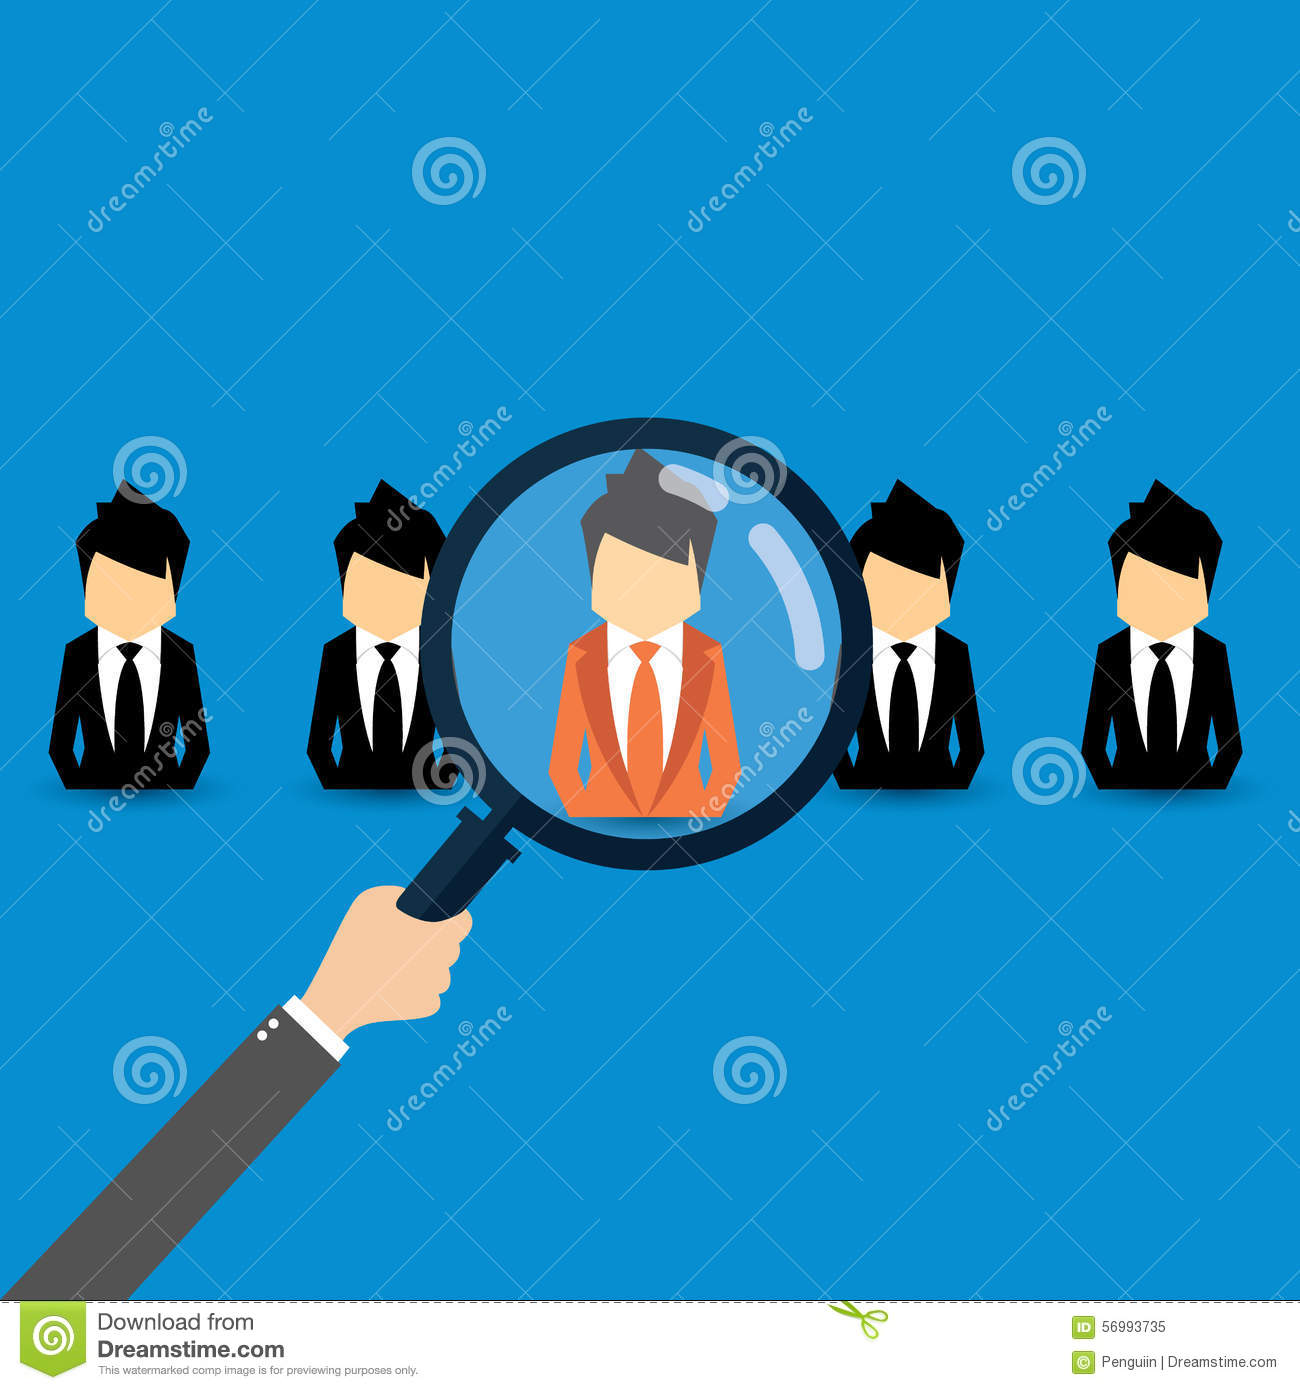 vector concept of searching for professional stuff head hunter vector concept of searching for professional stuff head hunter job employment issue human